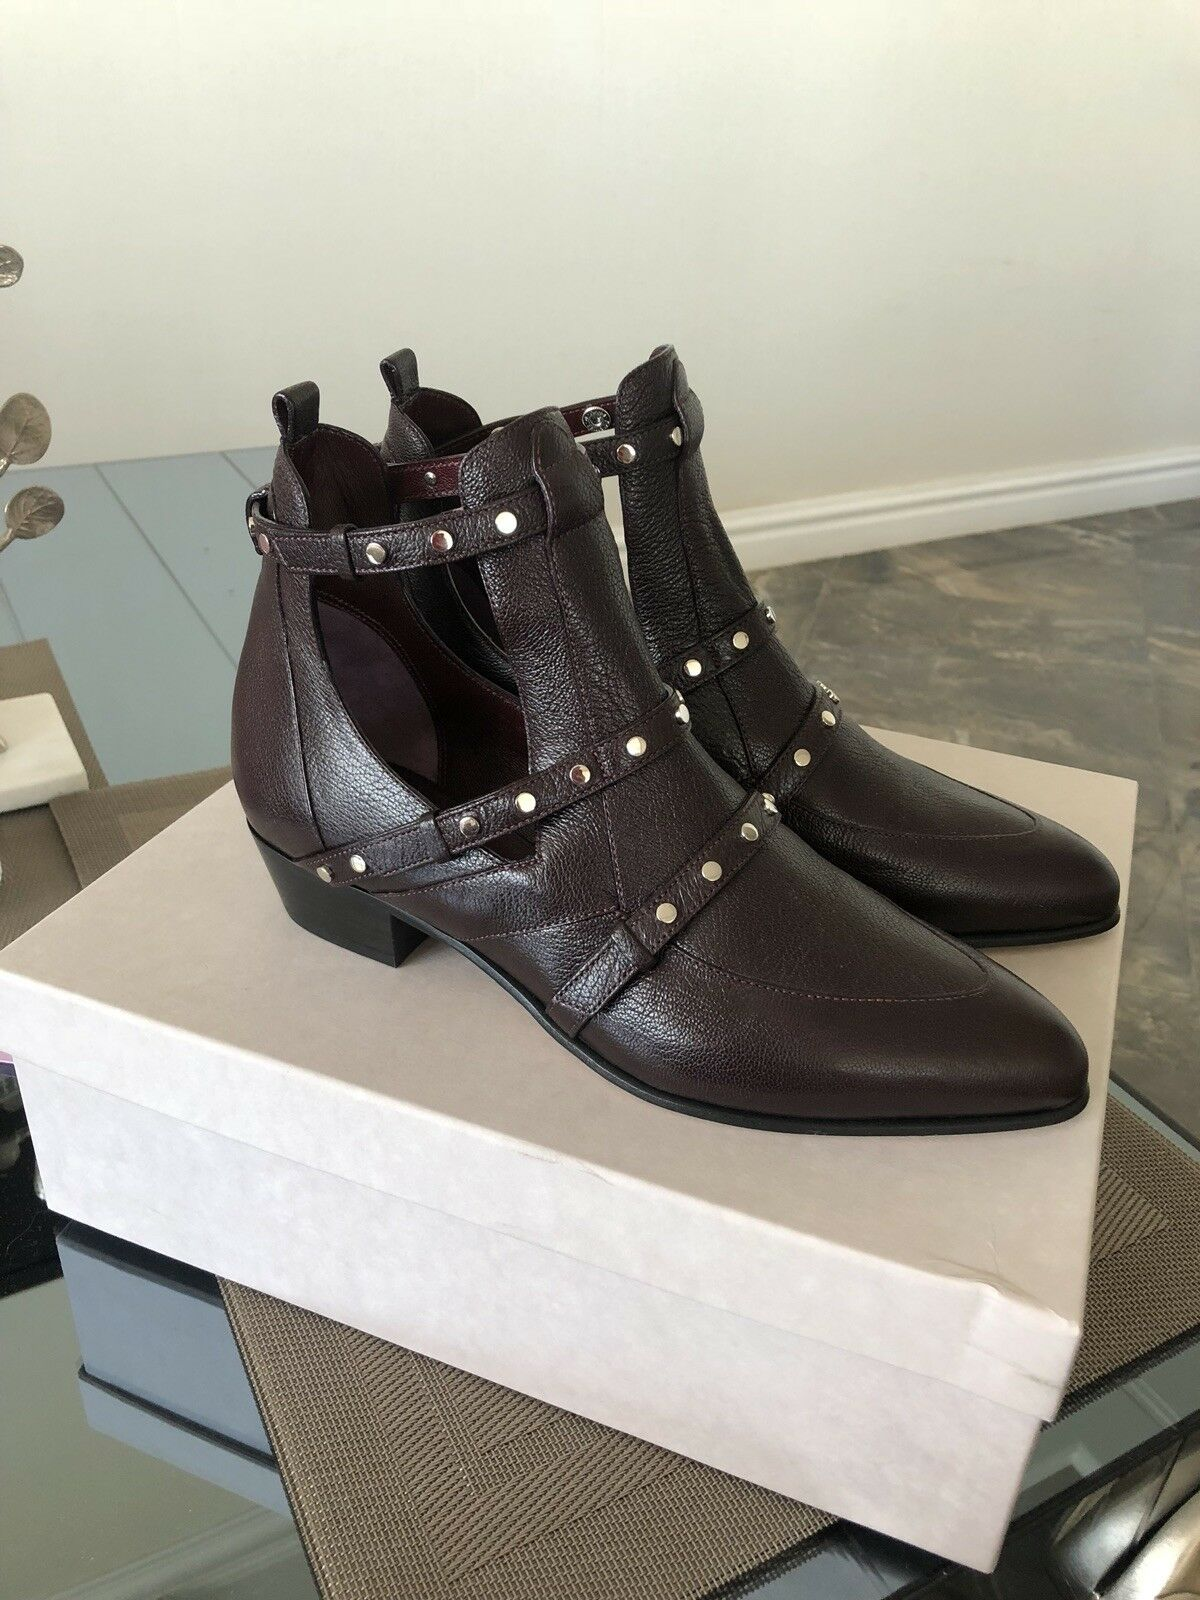 NIB JIMMY CHOO HARLEY LEATHER BOOTS SZ38 VINO COLOR